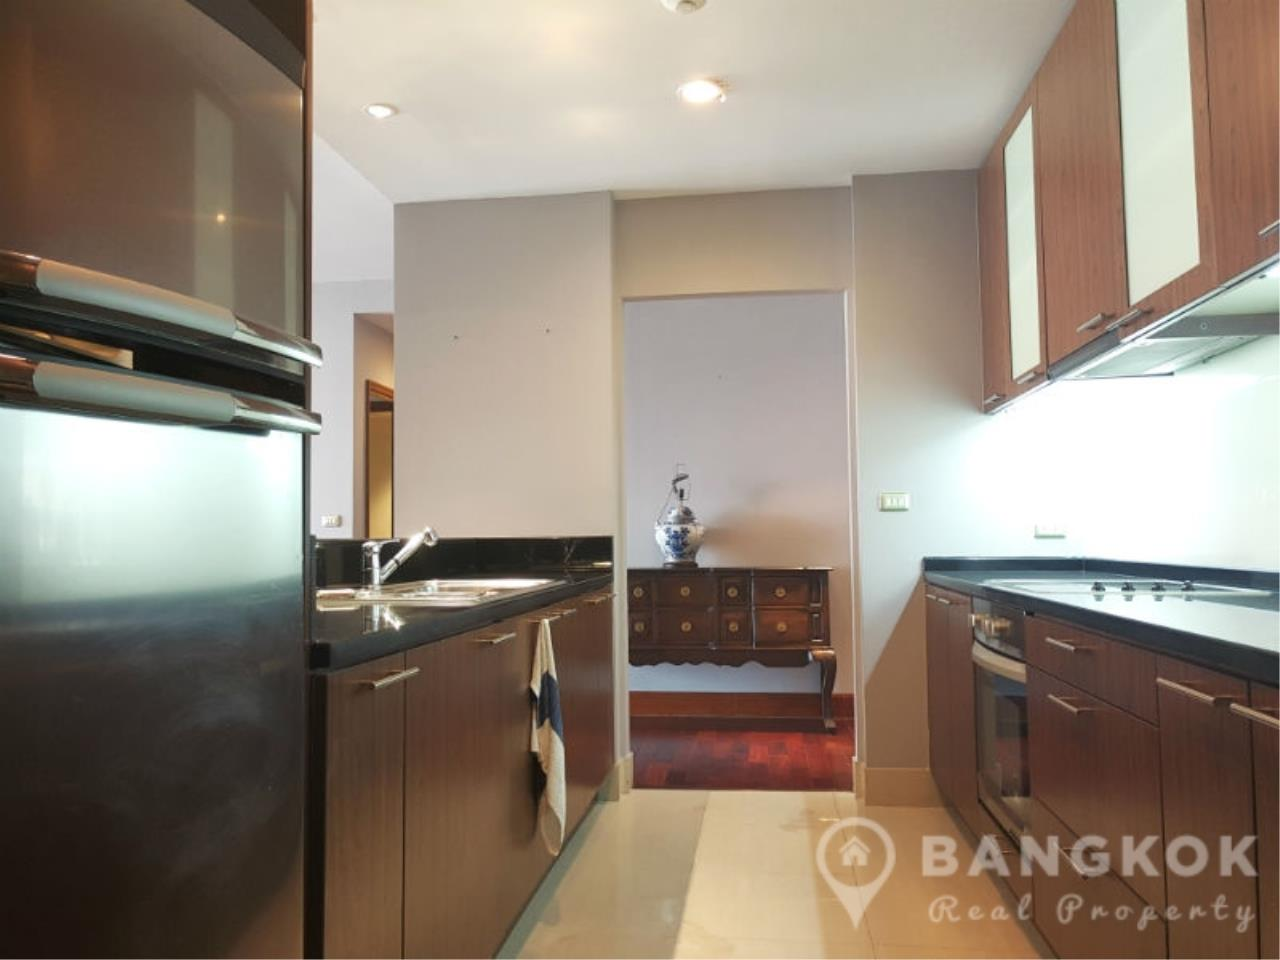 Bangkok Real Property Agency's Sky Villas (Ascott) Sathorn | Spacious High Floor 2 +1 Bed 2 Bath 8